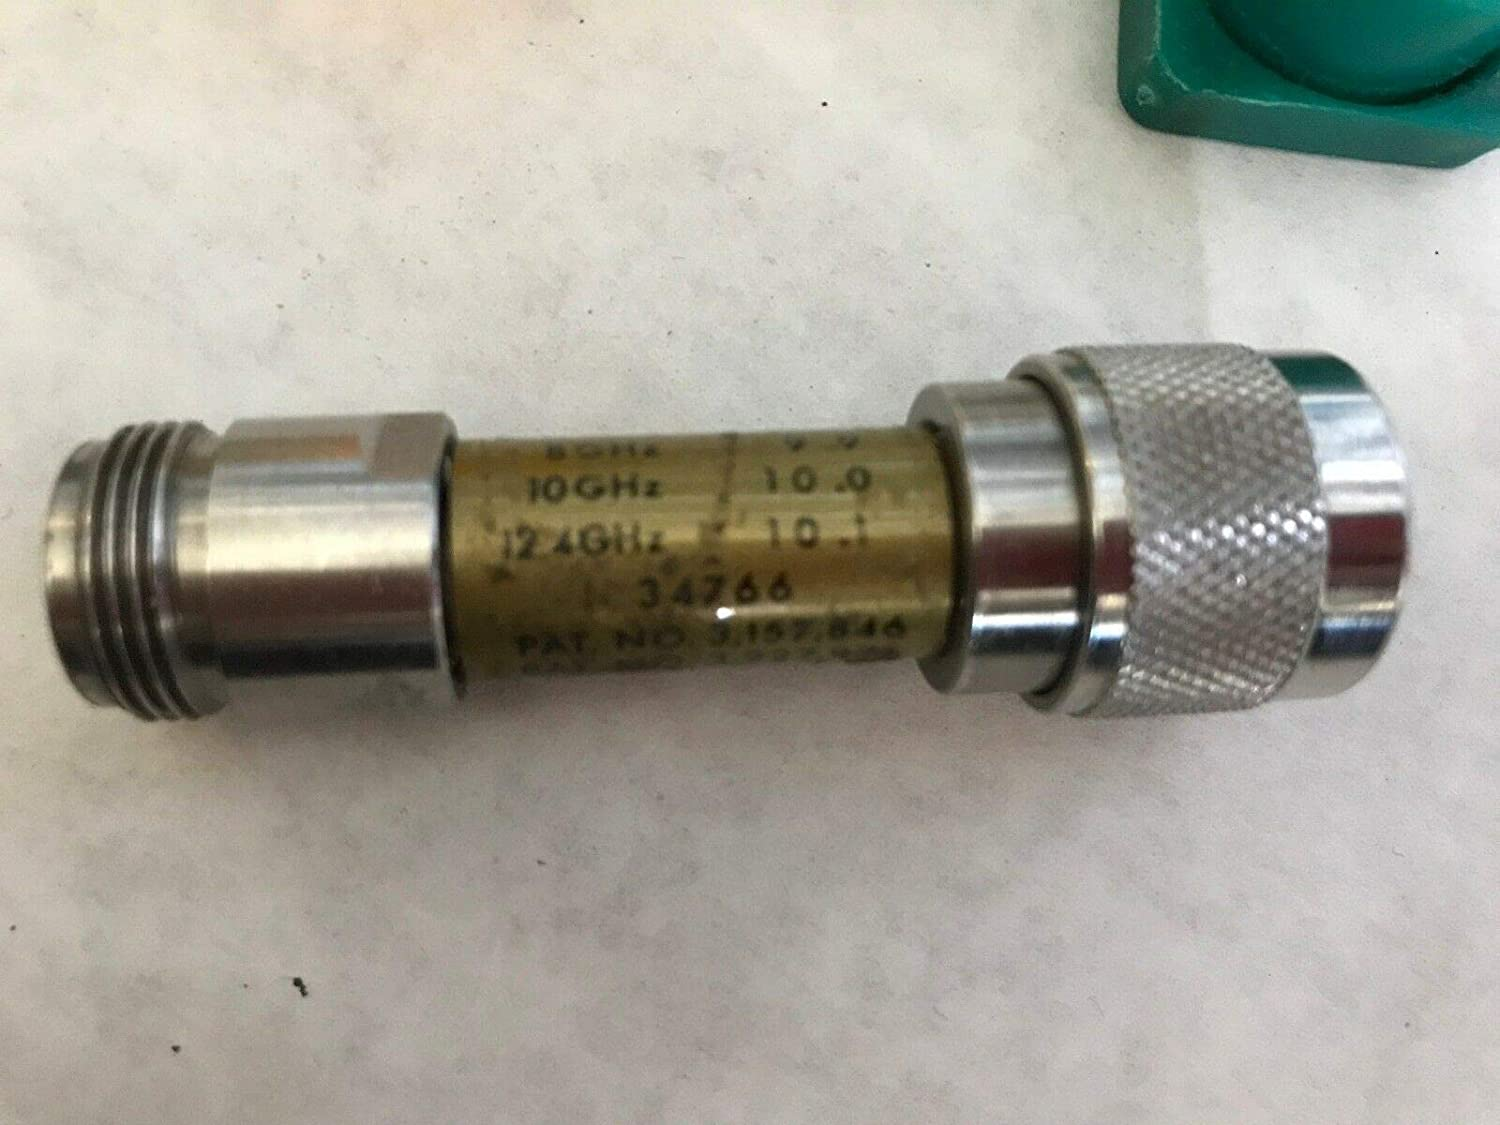 3//4-10 Size Bottoming Style H10 Pitch Diameter Limit Titanium Carbonitride Coated Finish DIN Length High-Speed Steel Morse Cutting Tools 61585 Thread Forming High Performance Taps